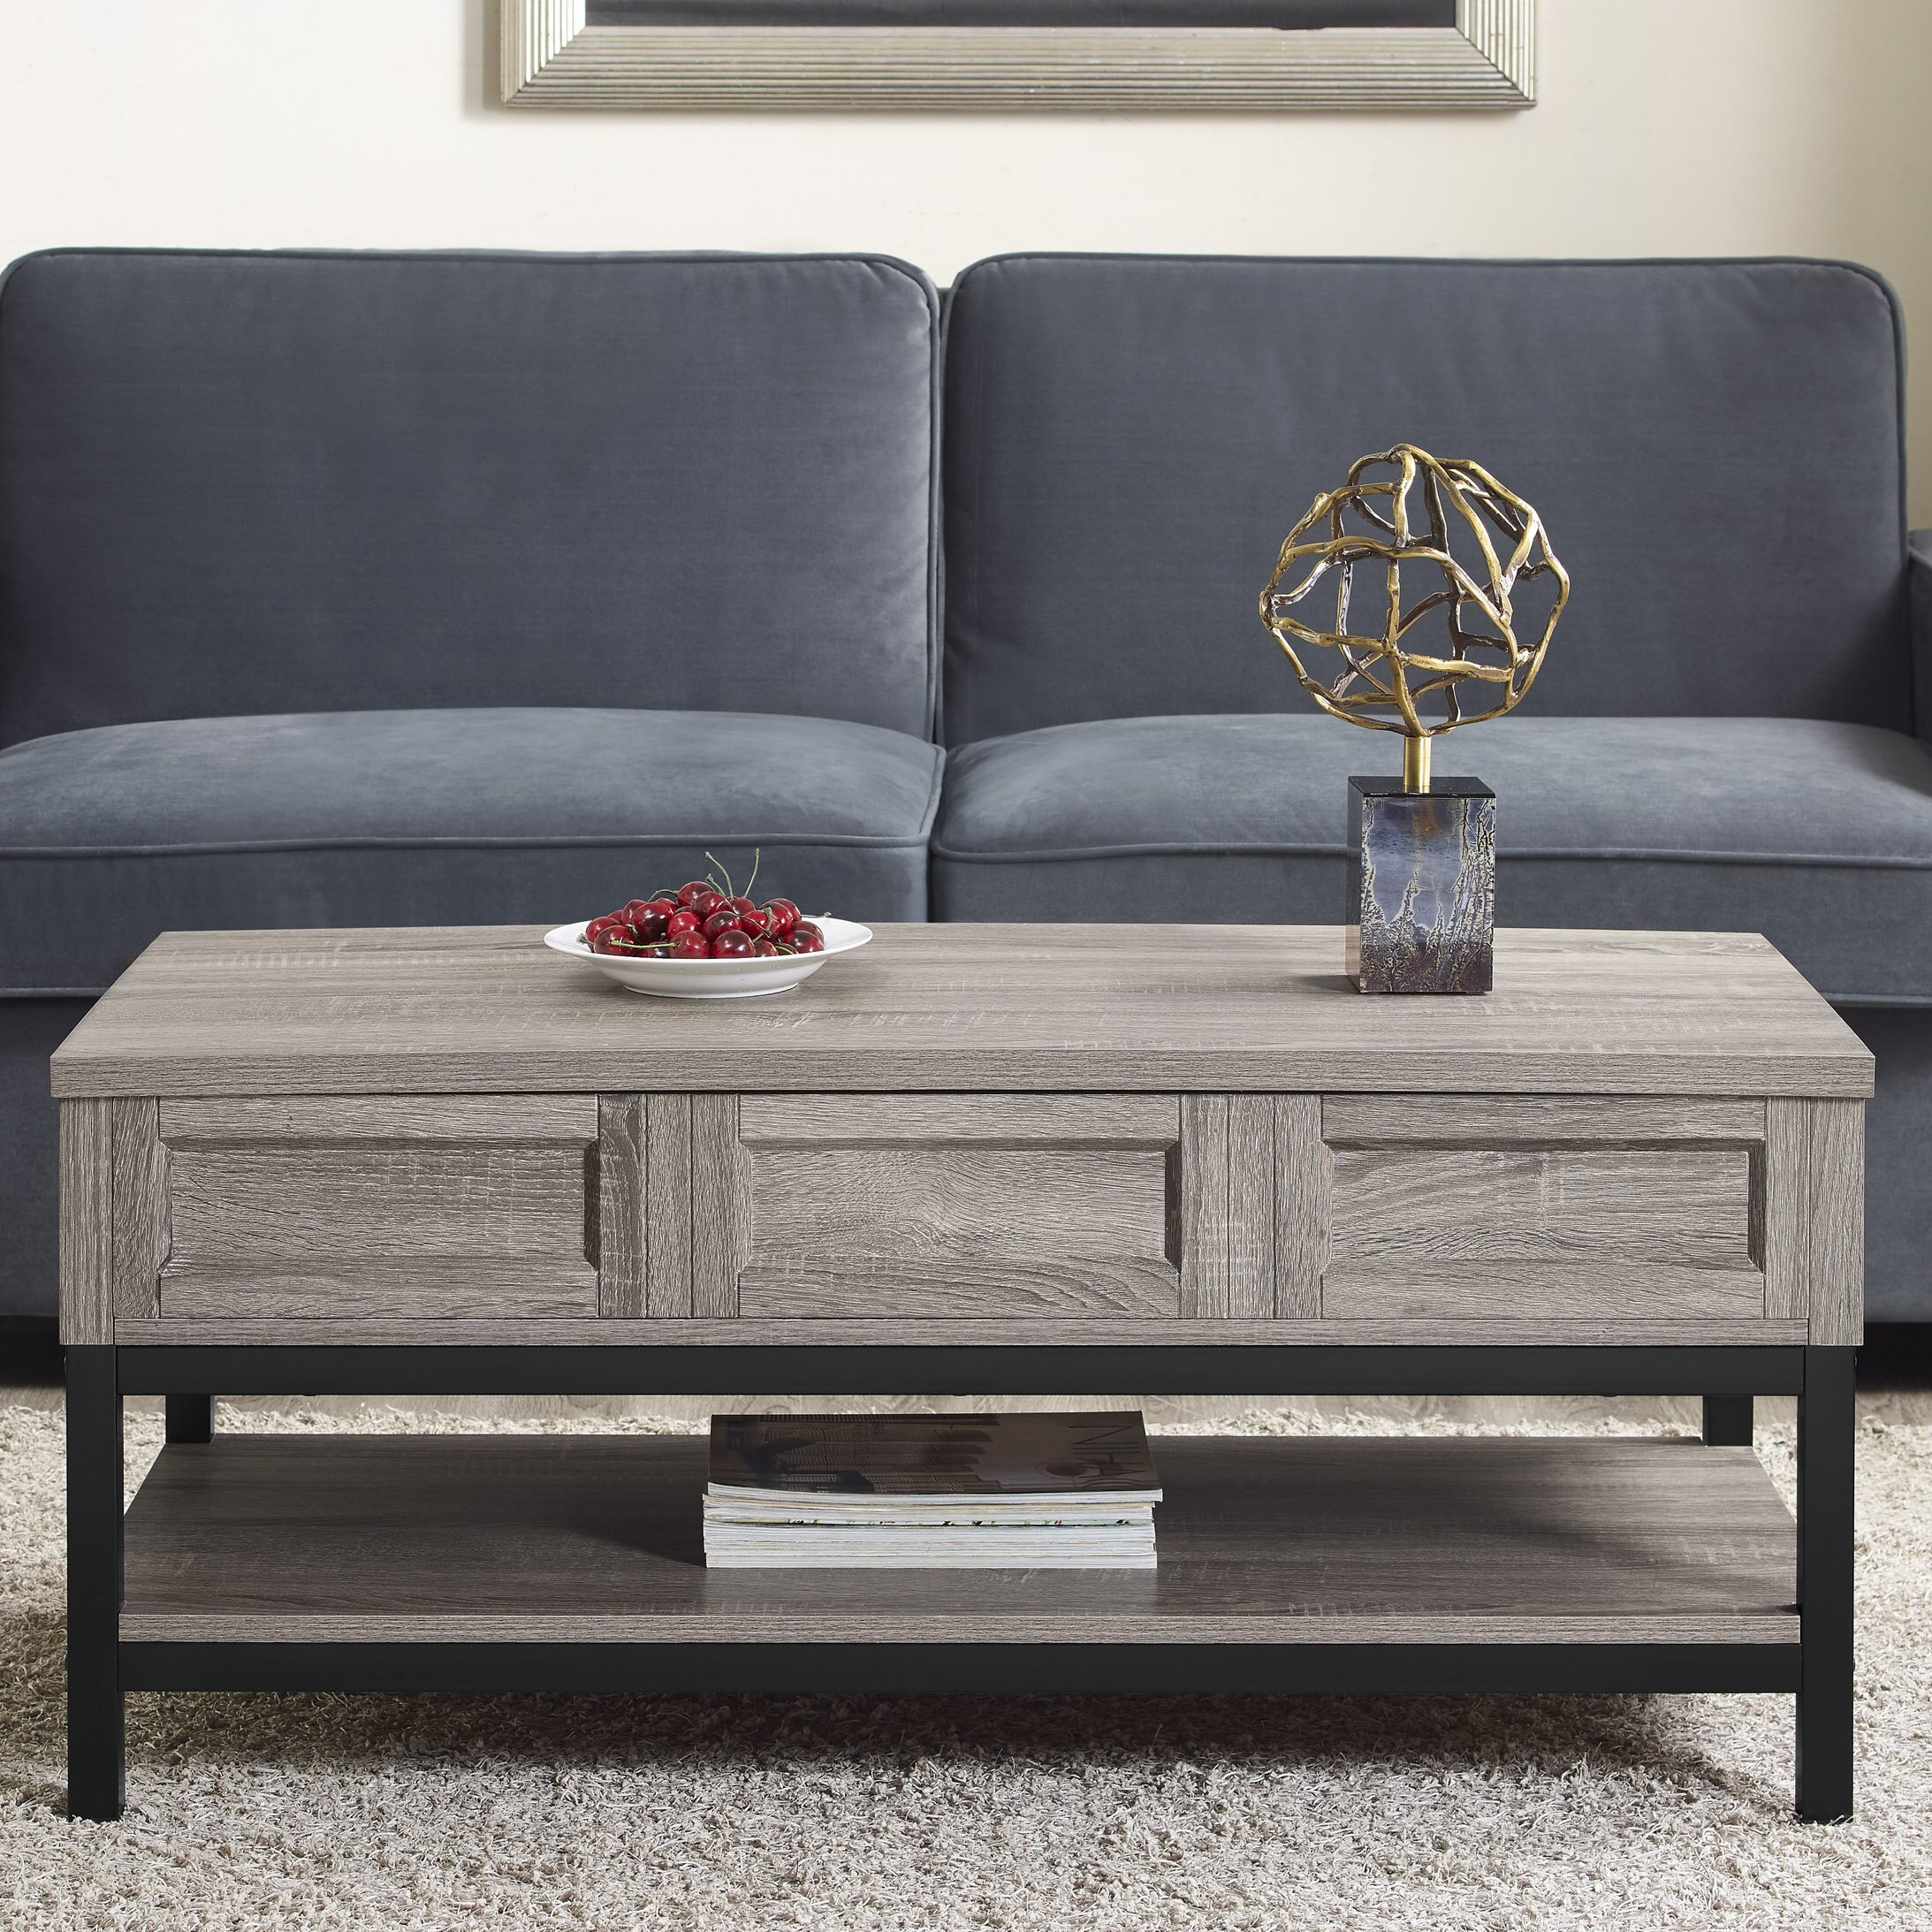 Modern Farmhouse Coffee Table: Laurel Foundry Modern Farmhouse Omar Coffee Table With